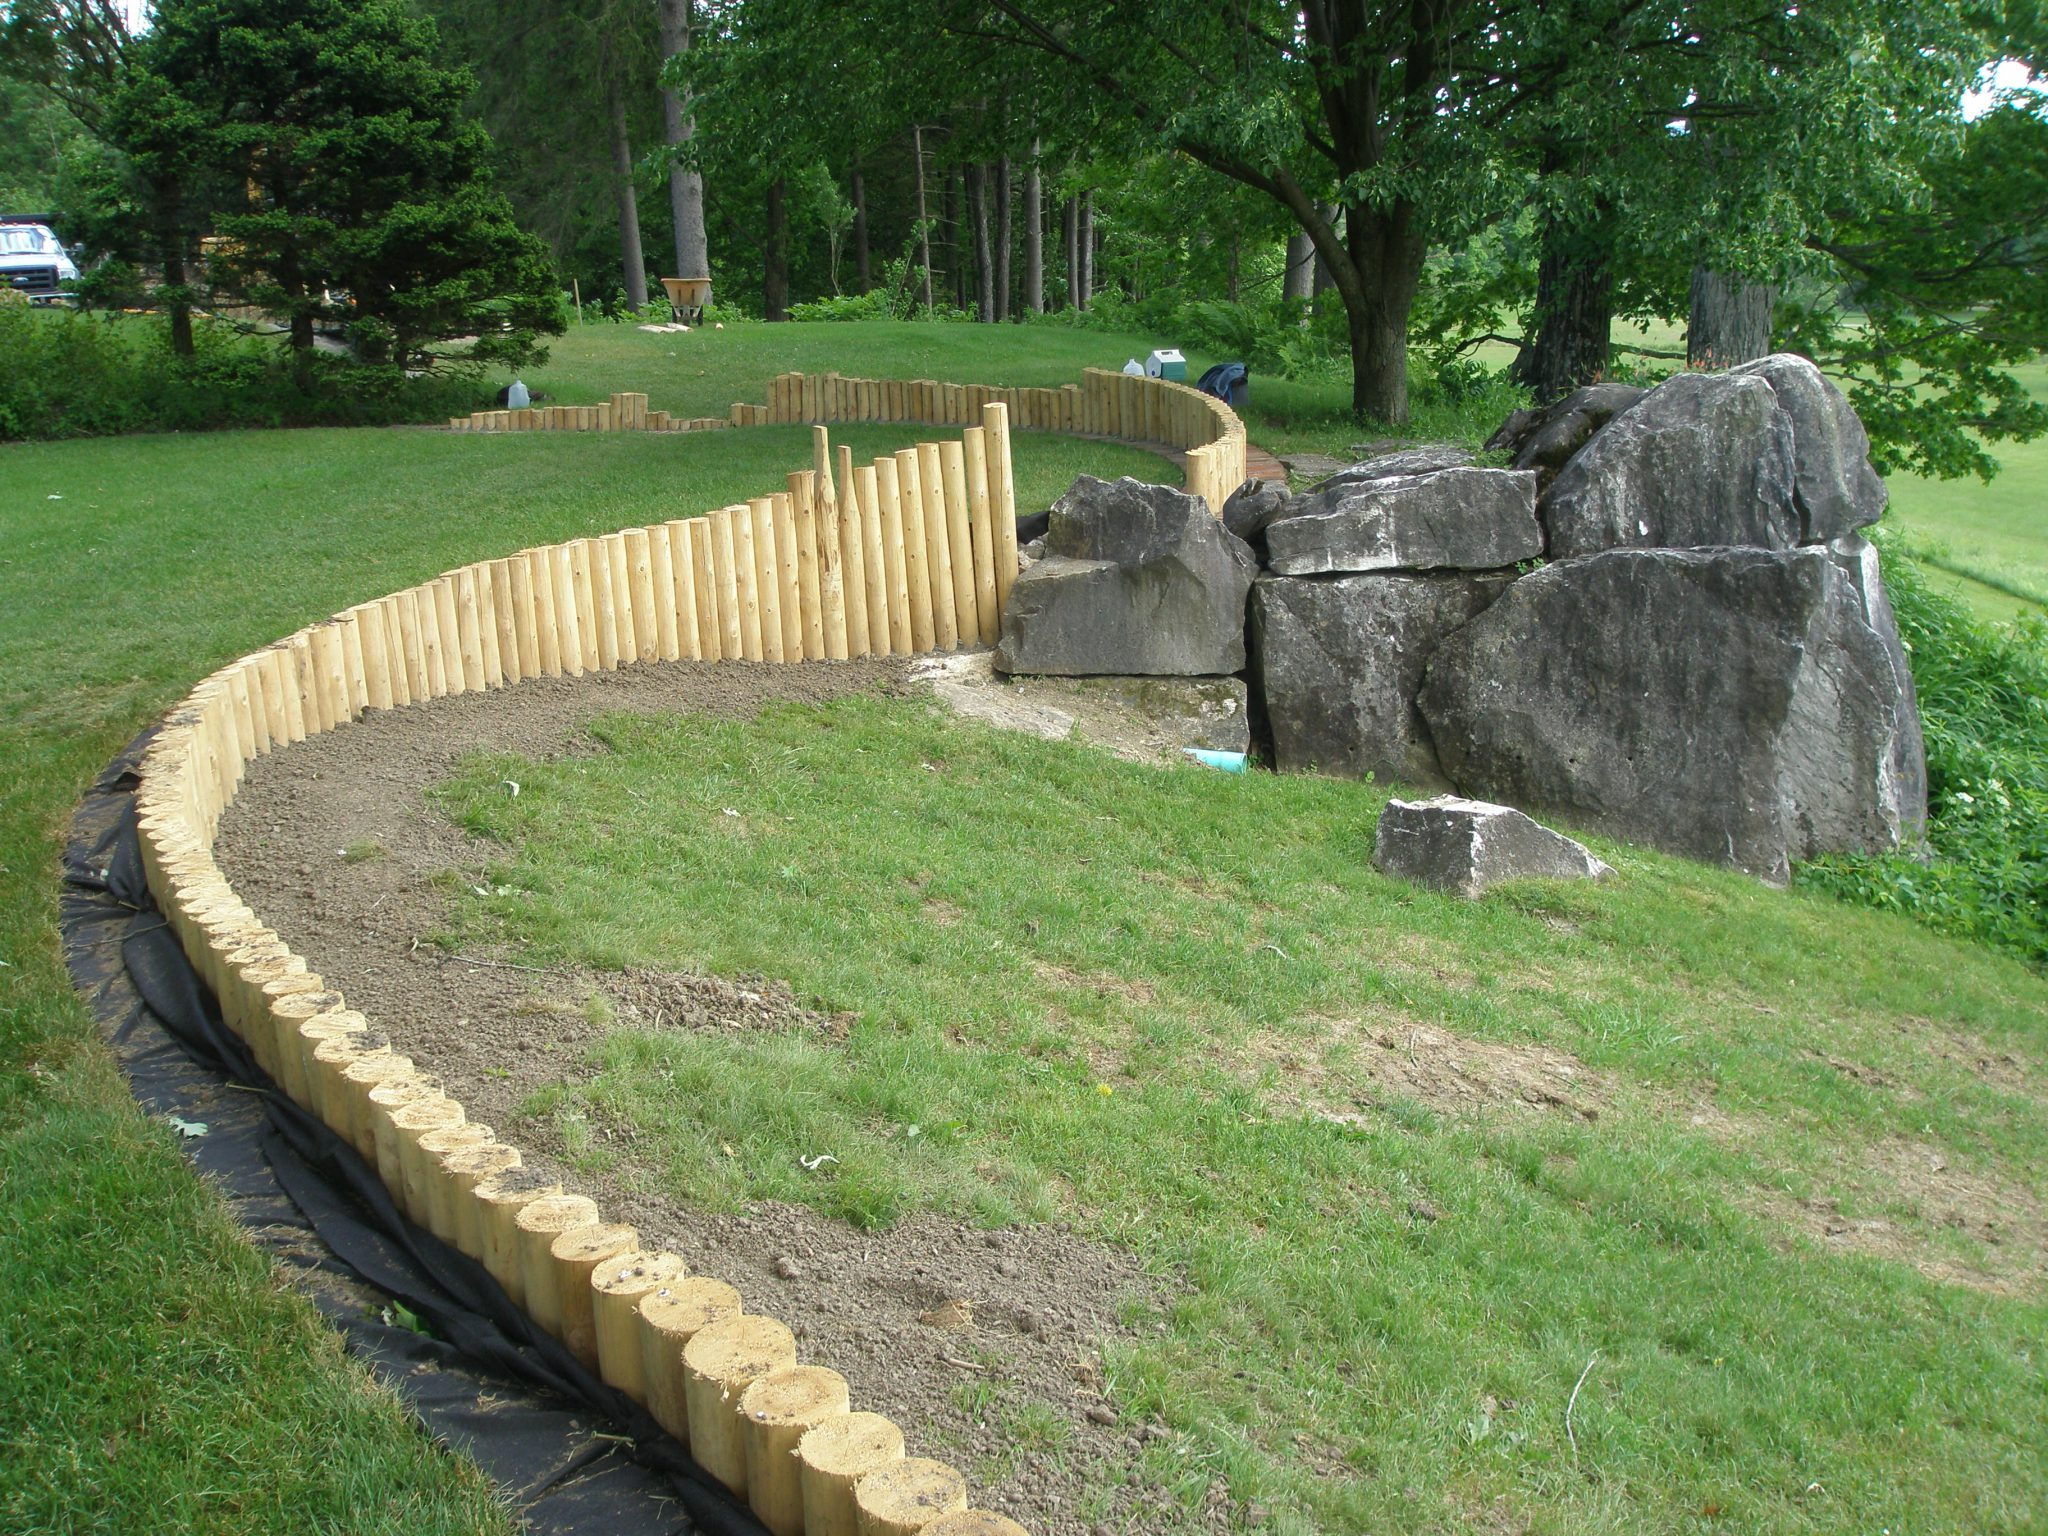 A close-up of the Oak Lawn's new cedar post retaining wall